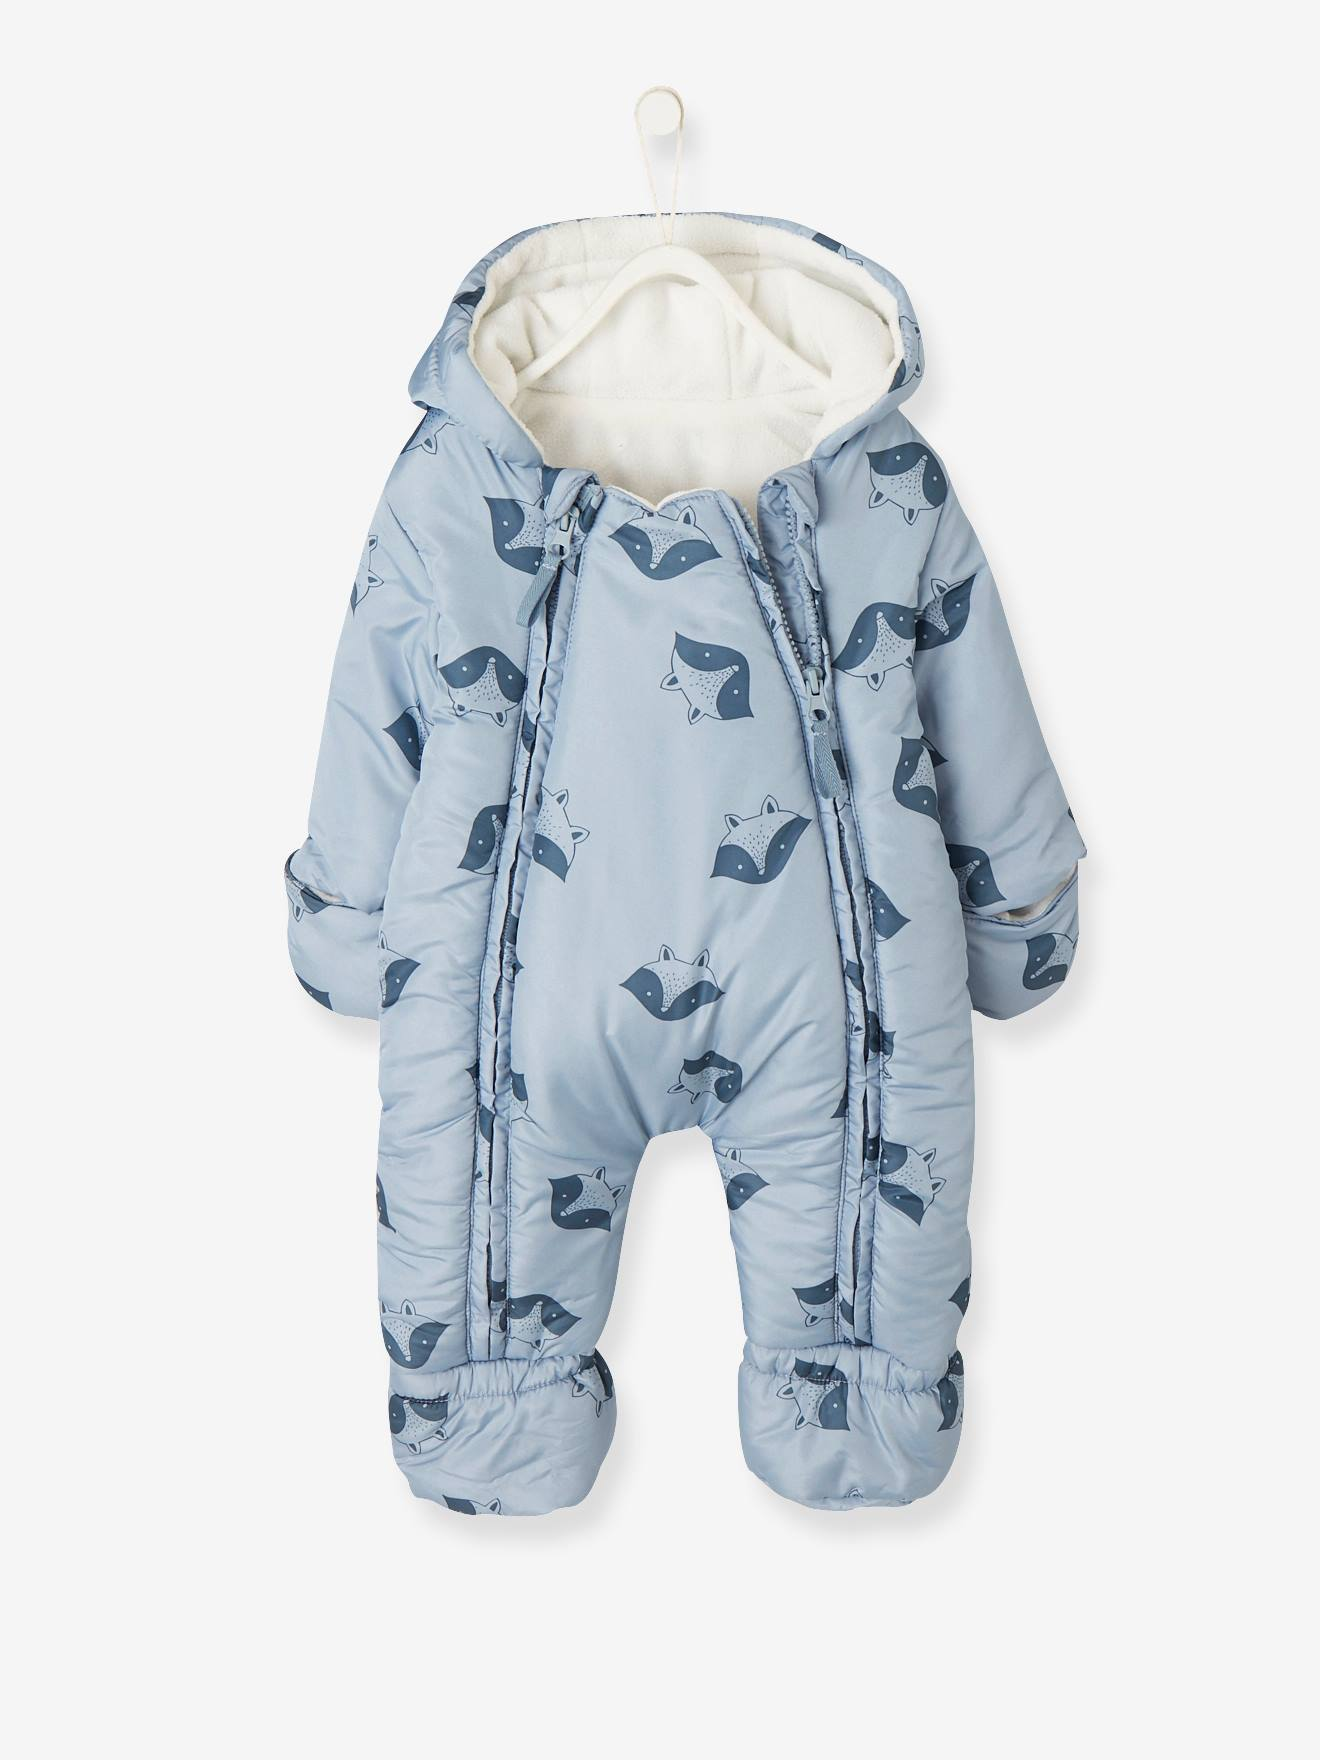 9f259c758 Convertible Baby Snowsuit - white light solid with design